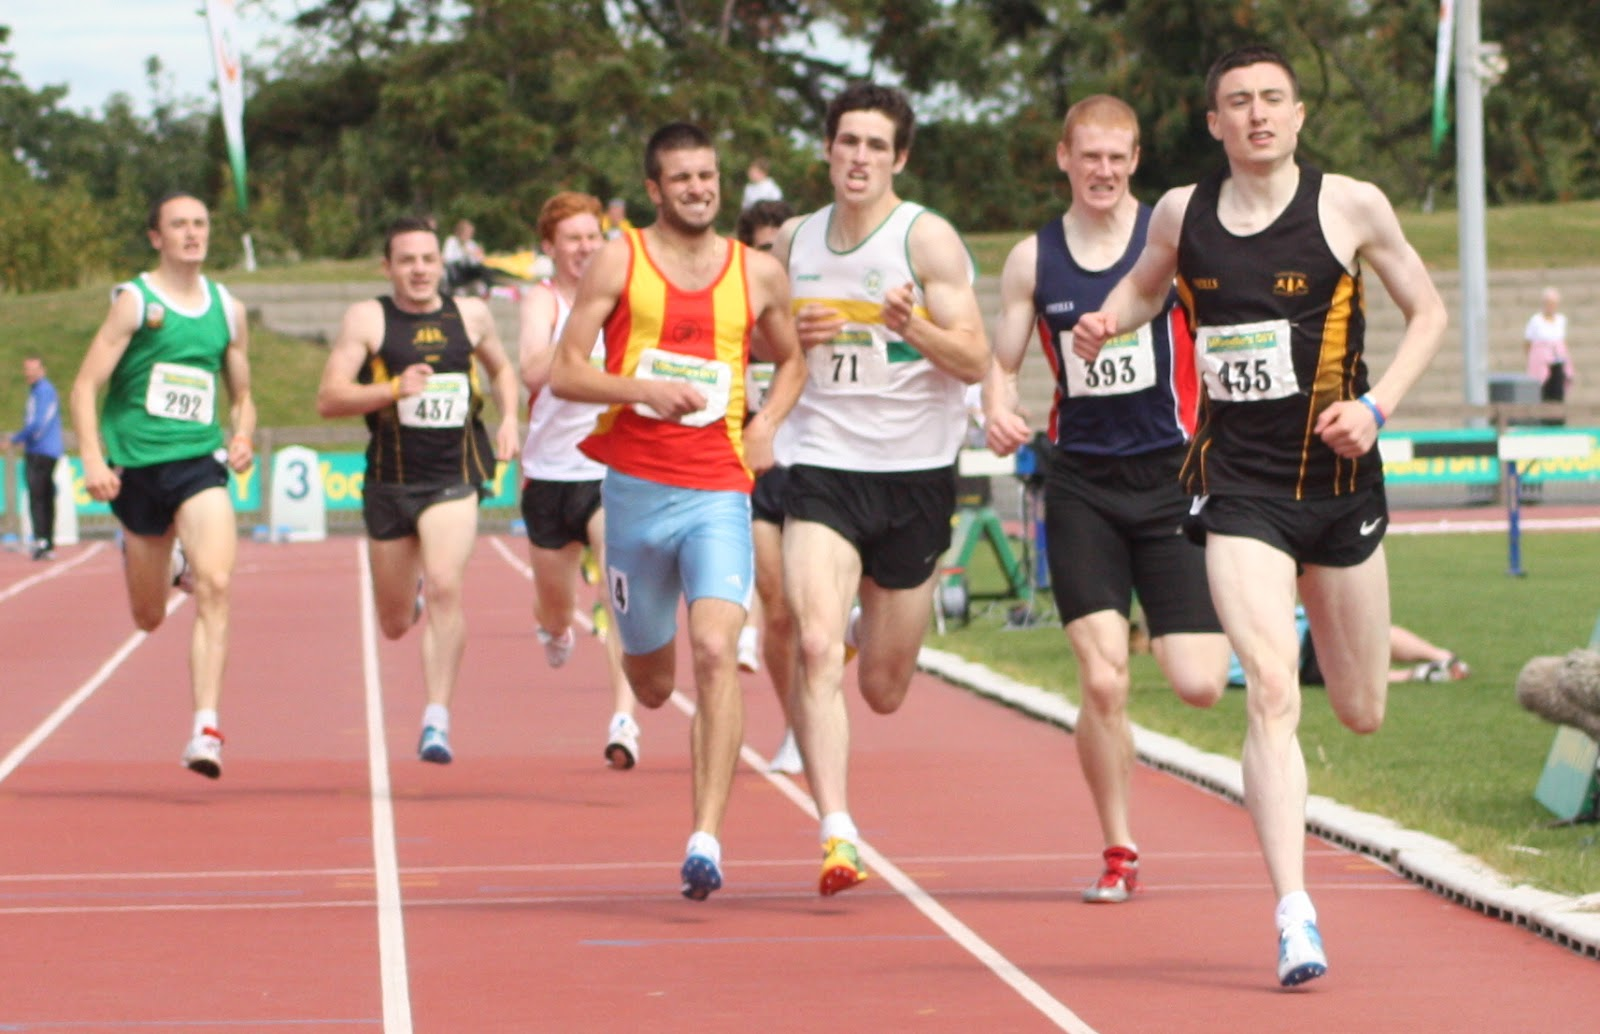 Mark English wins last year's national Senior 800 metres